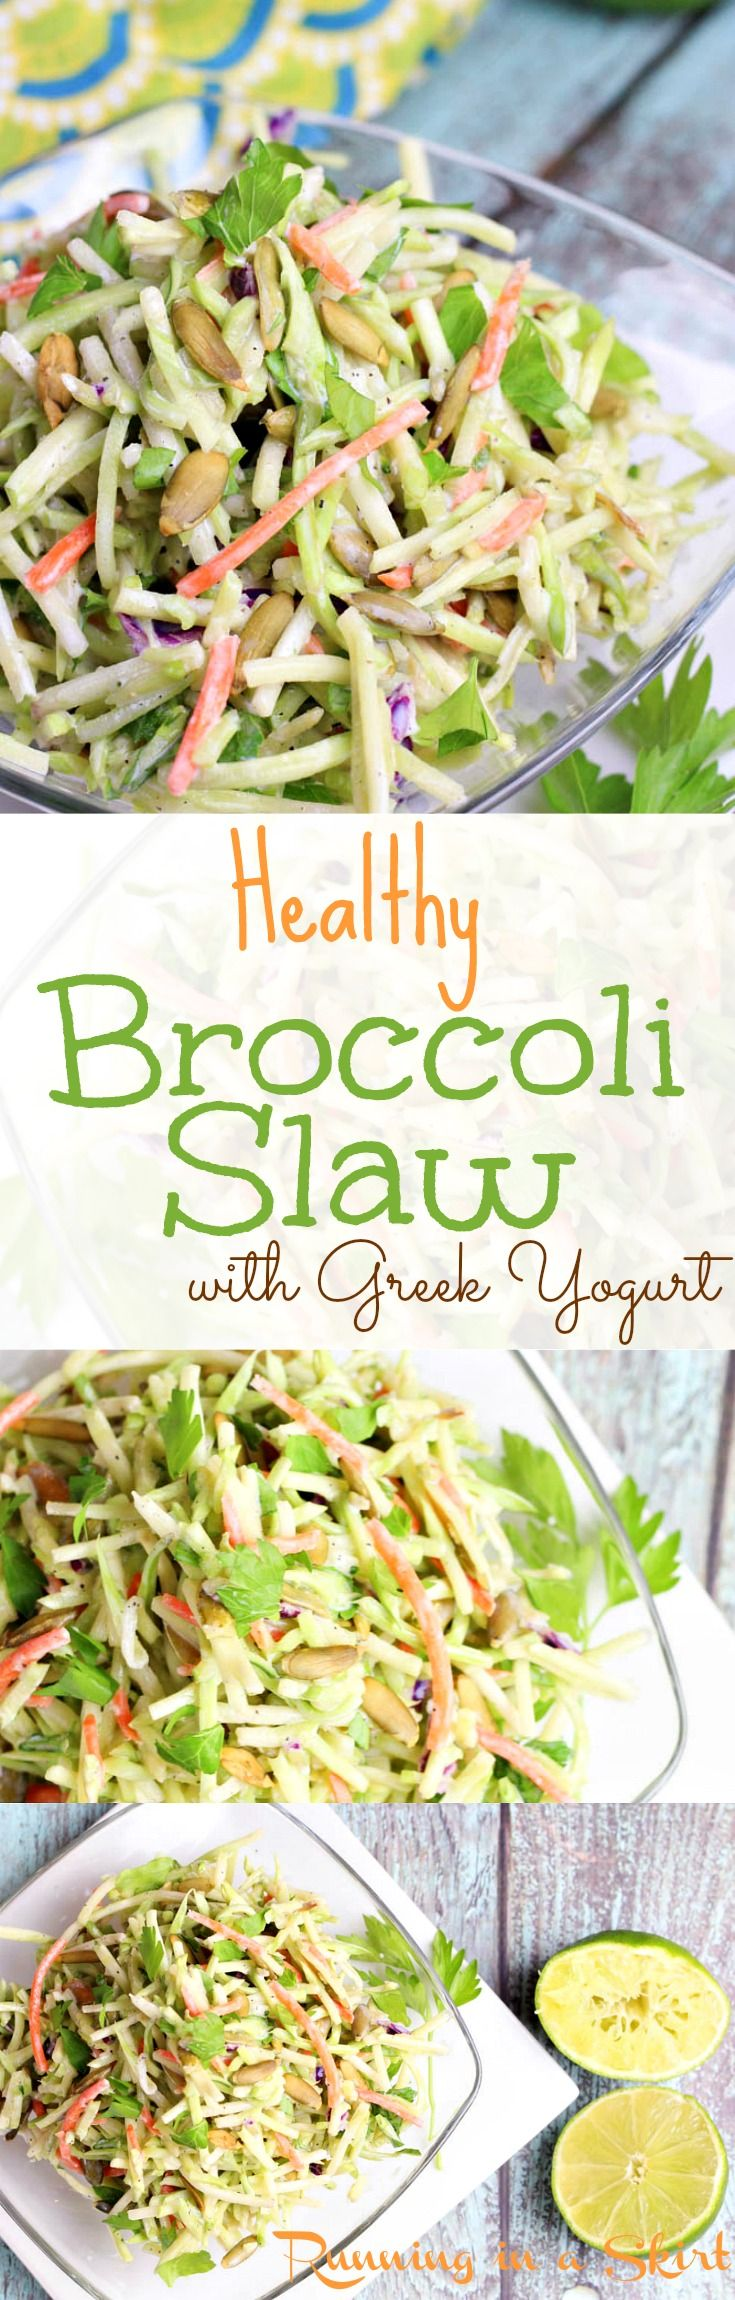 Healthy Broccoli Slaw Recipes. Made with greek yogurt and sunflower or pumpkin seeds. Clean eating and packed with veggies. Light dressing without sugar. / Running in a Skirt